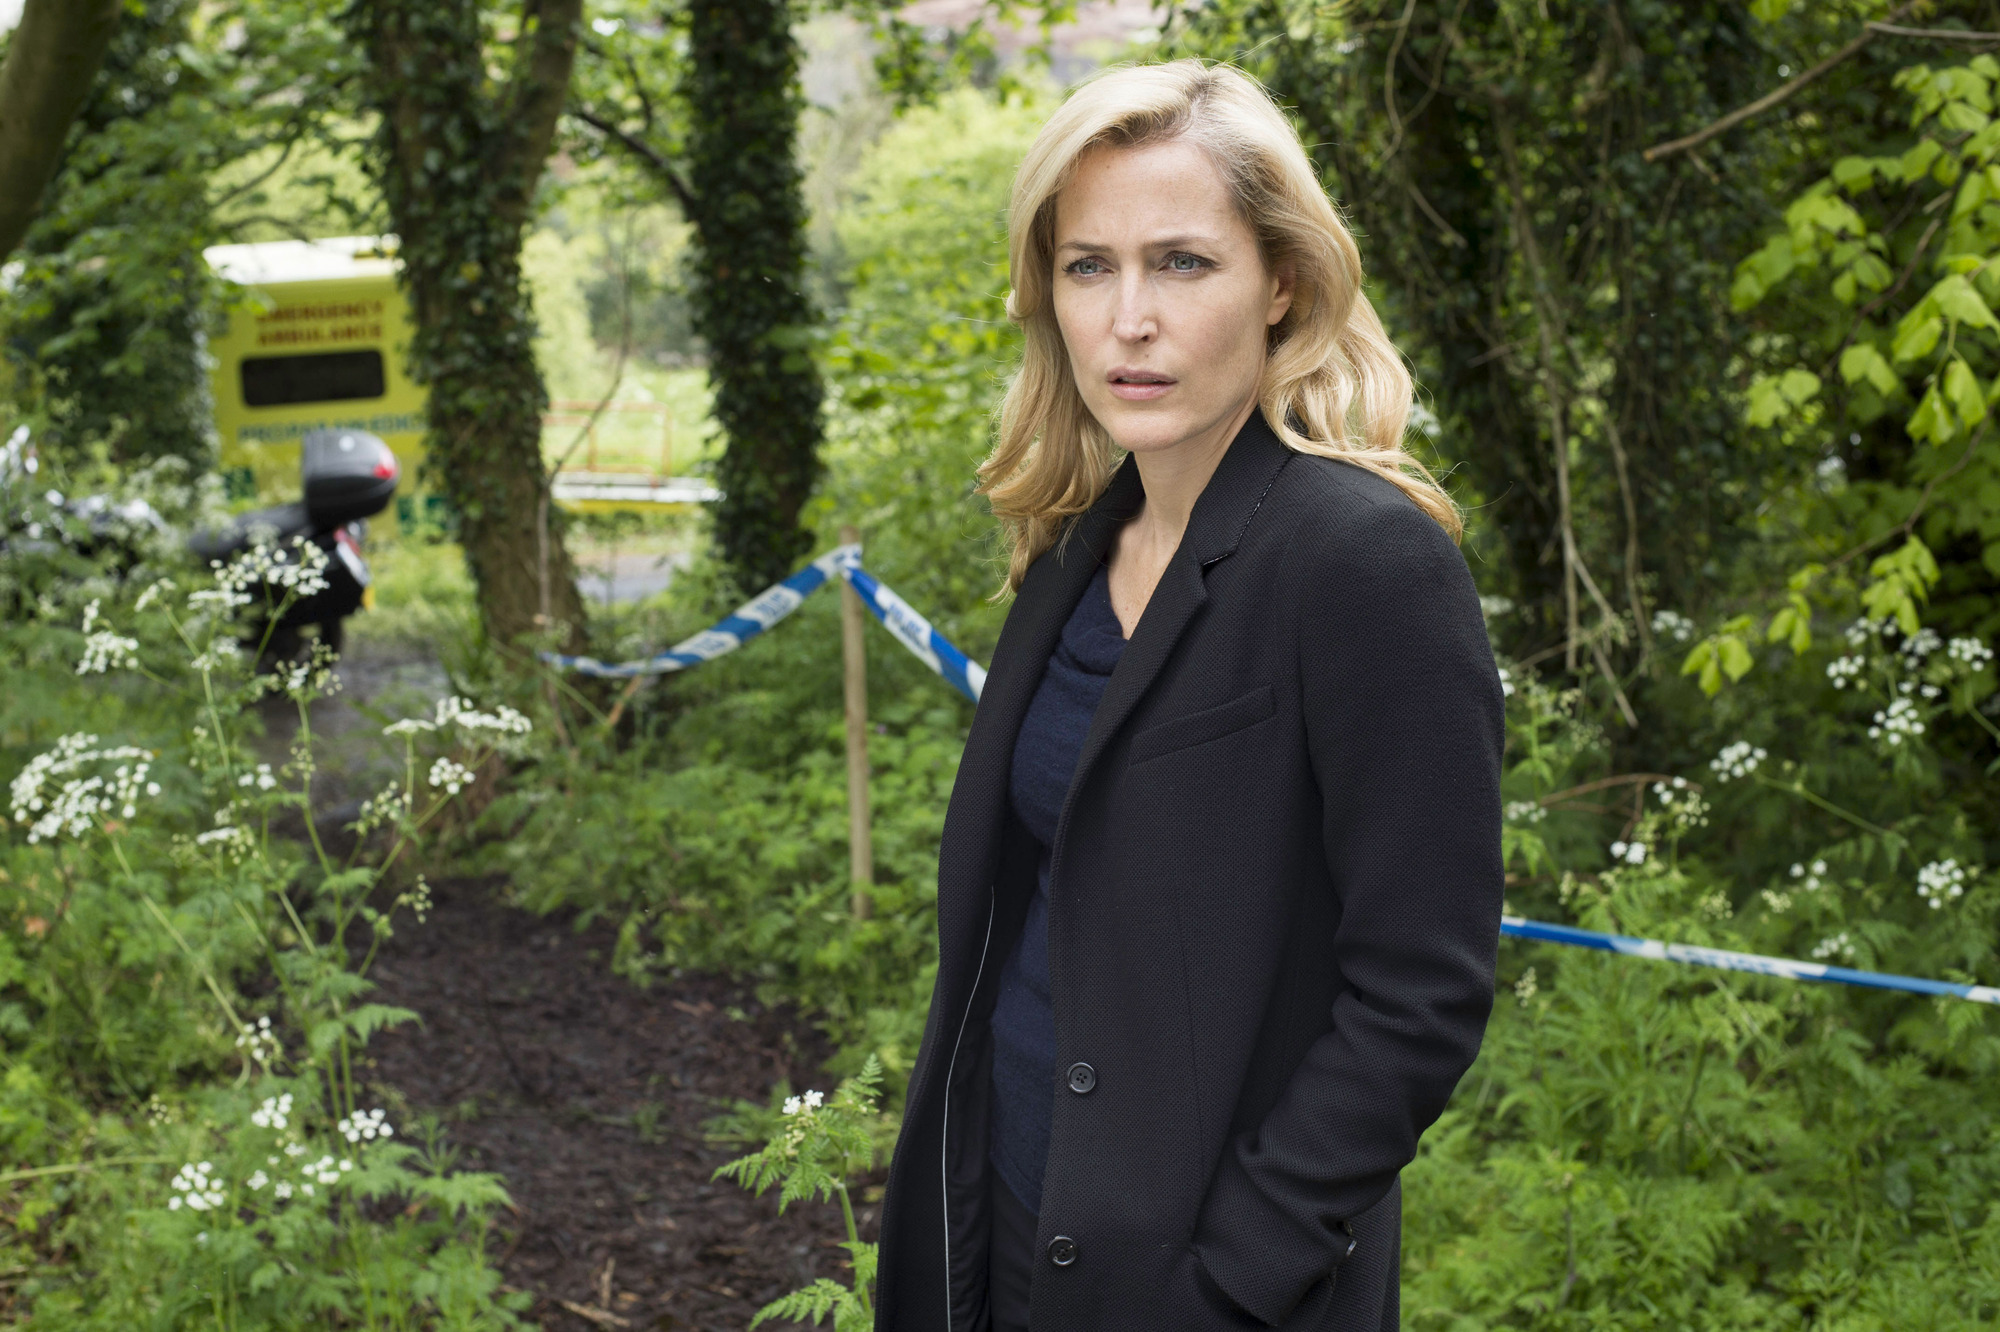 X Files character Dana Scully is back as Gillian Anderson reveals her red hair